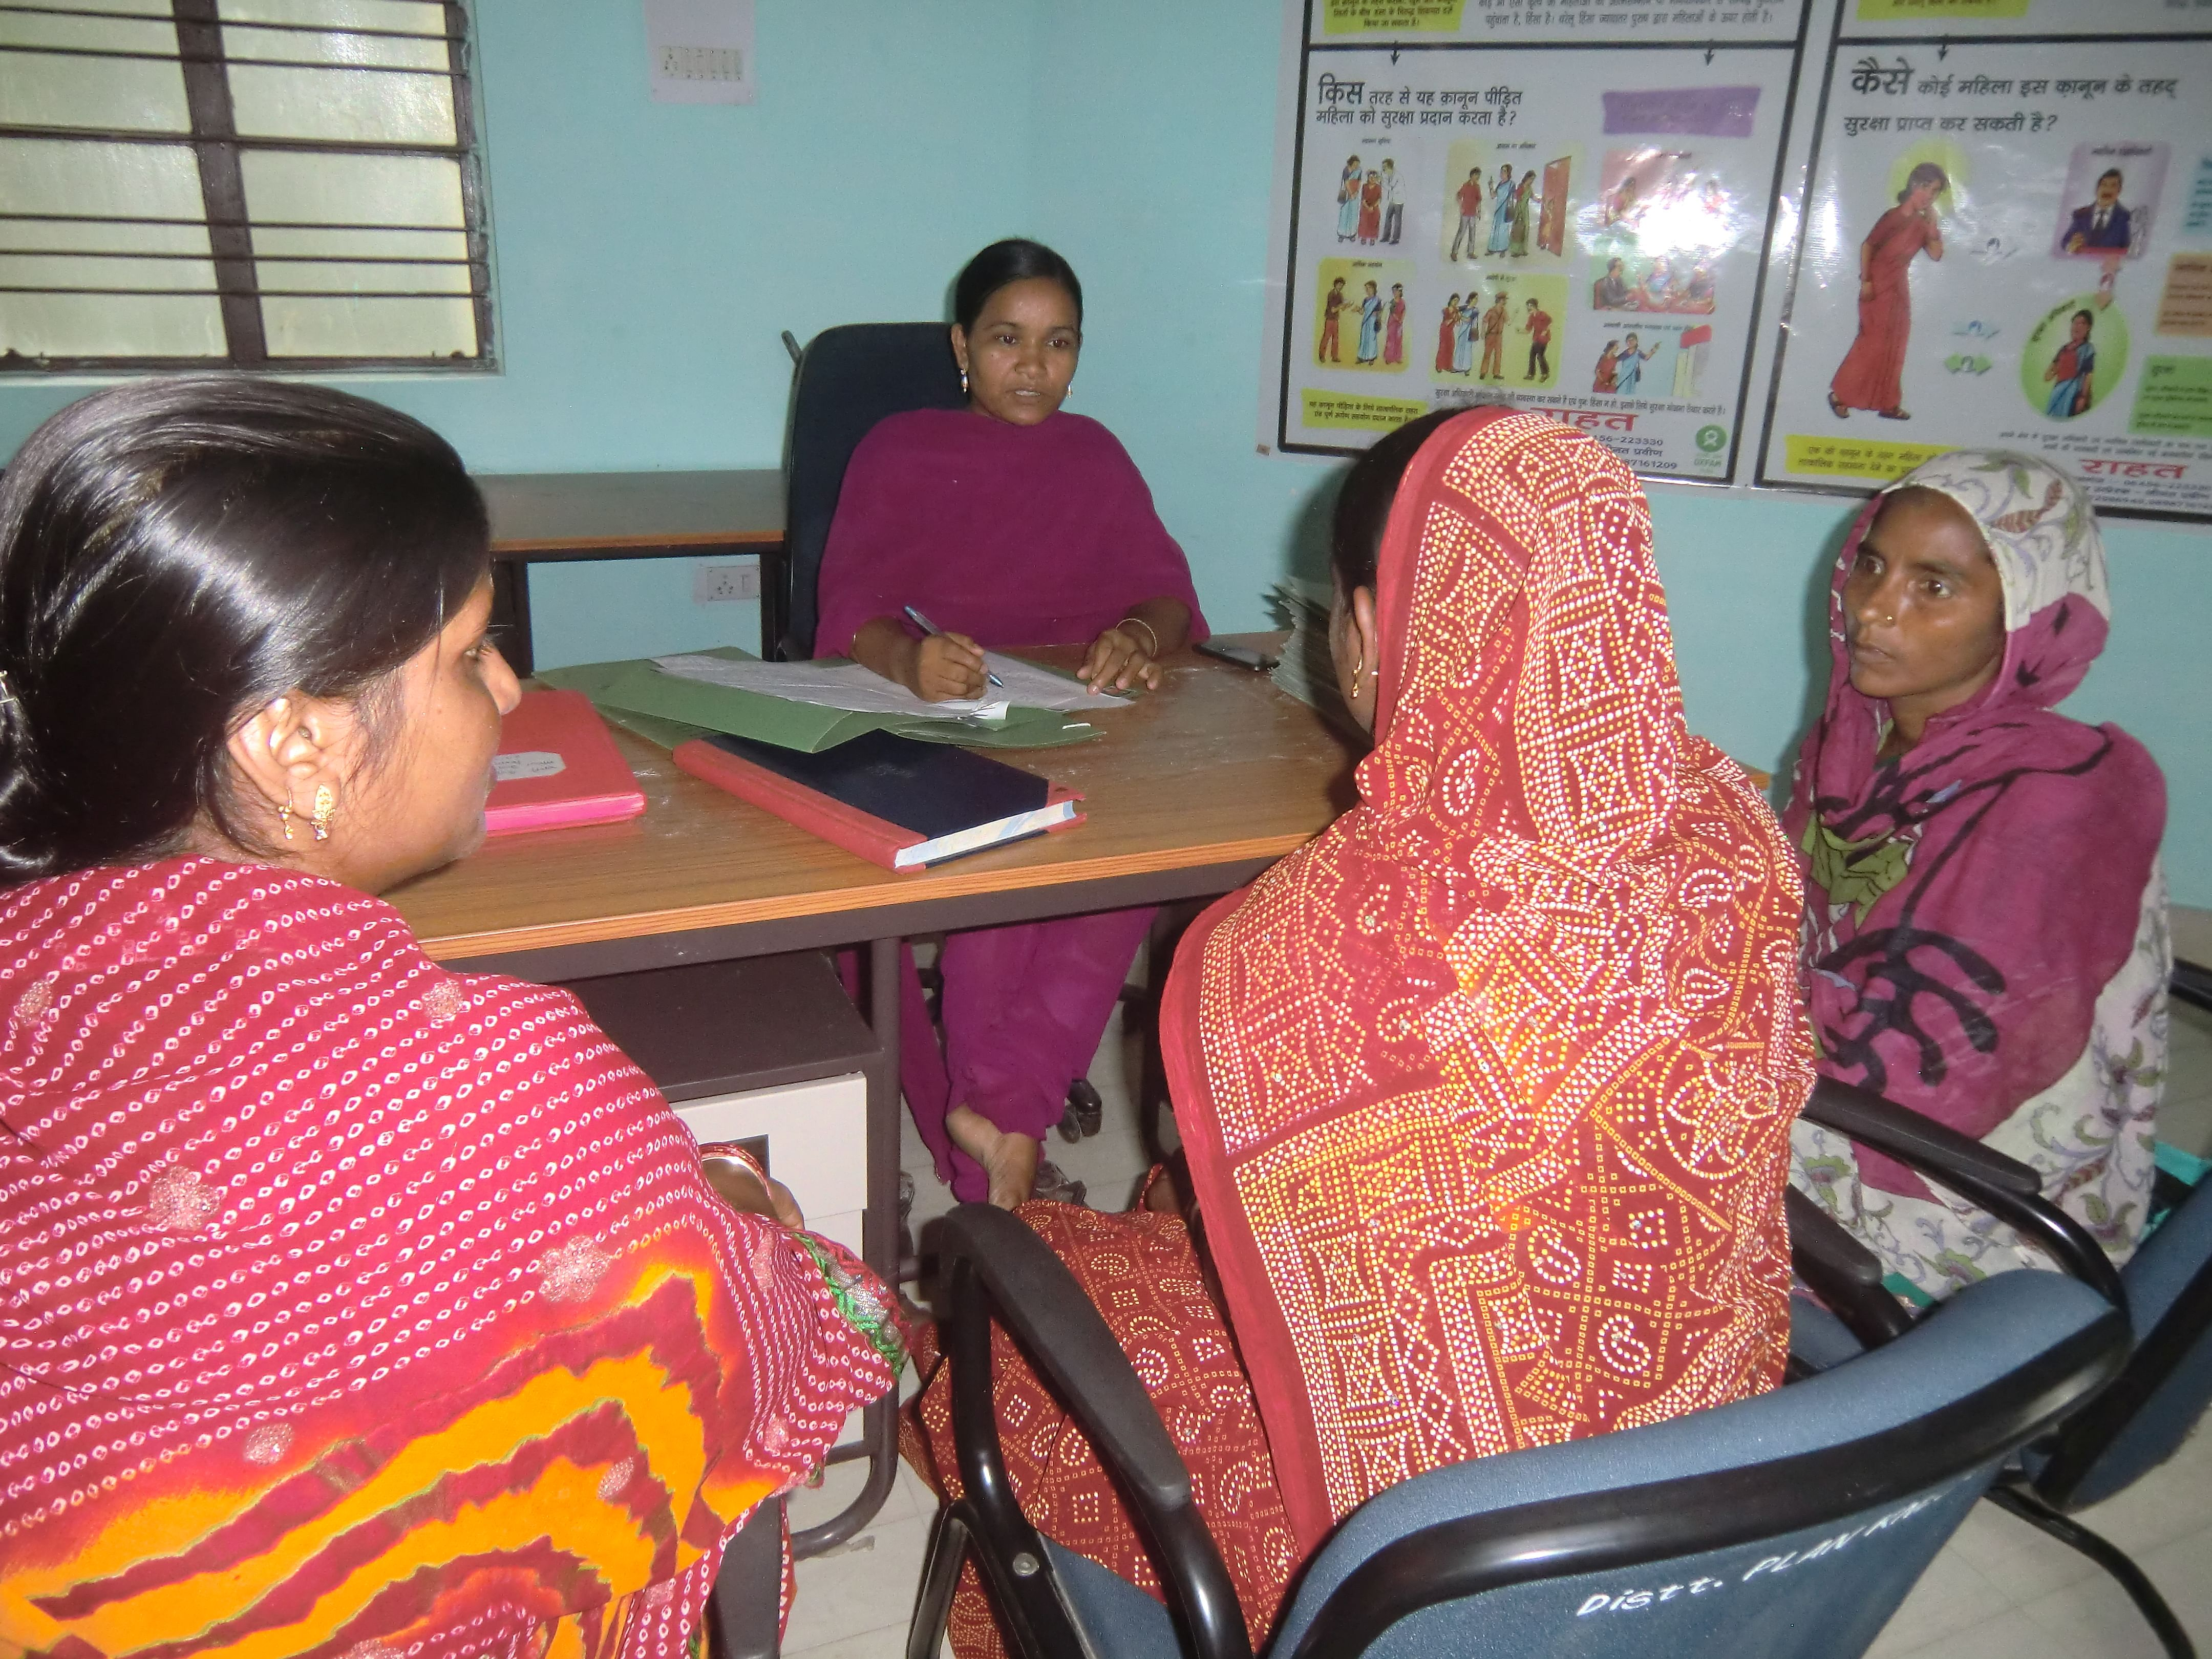 The Mahila Helpline office based in Kishanganj district received around 1,423 cases between 2007 and 2014, majority of which were reported by Muslim women. (Credit: Ajitha Menon\WFS)